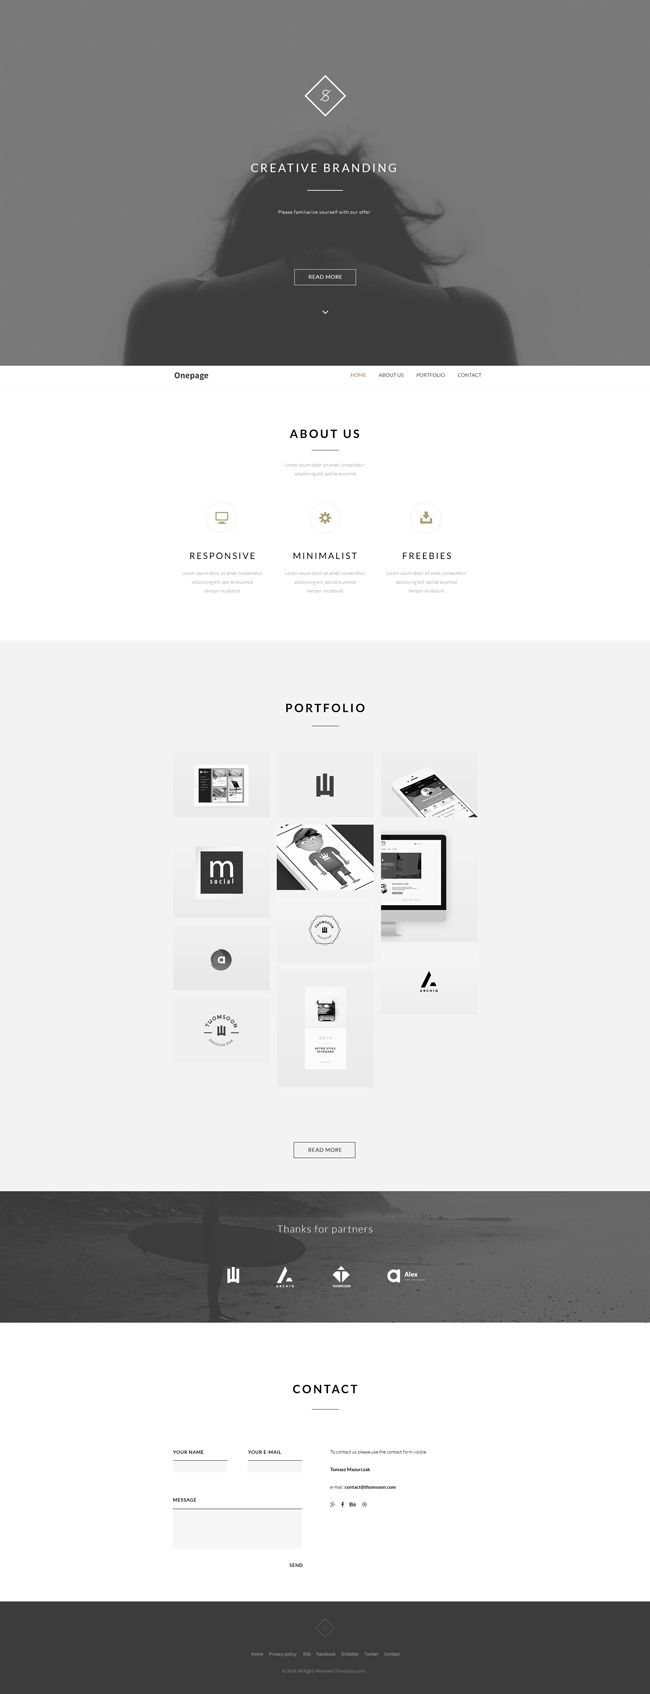 One Page Clean Website Template (#PSD, #HTML5, #CSS3, #JS, #Behance API)